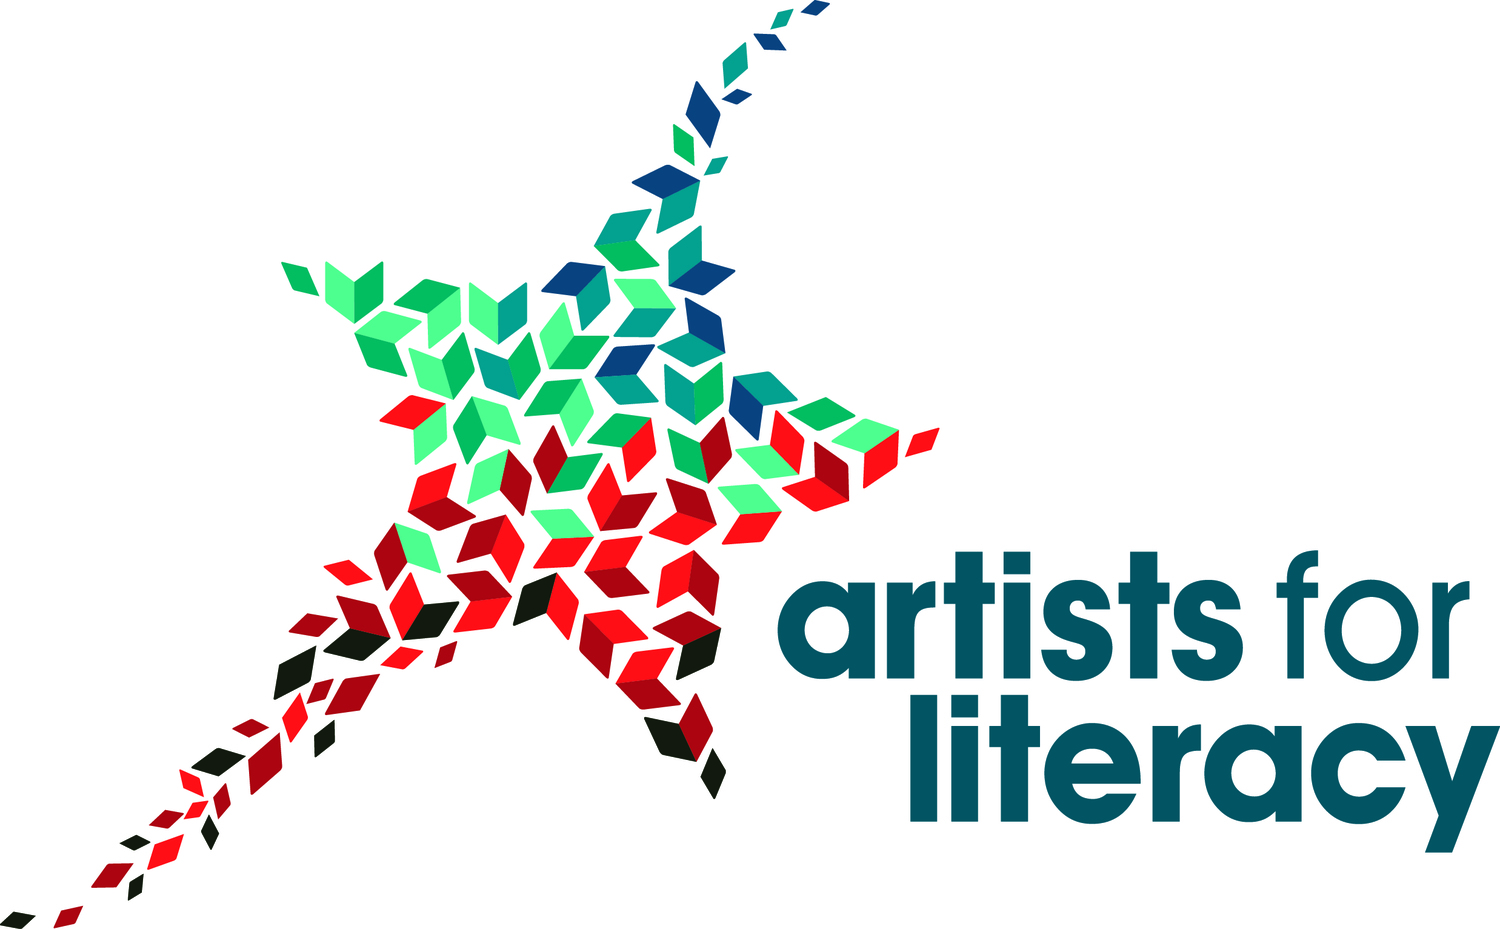 Artists for Literacy